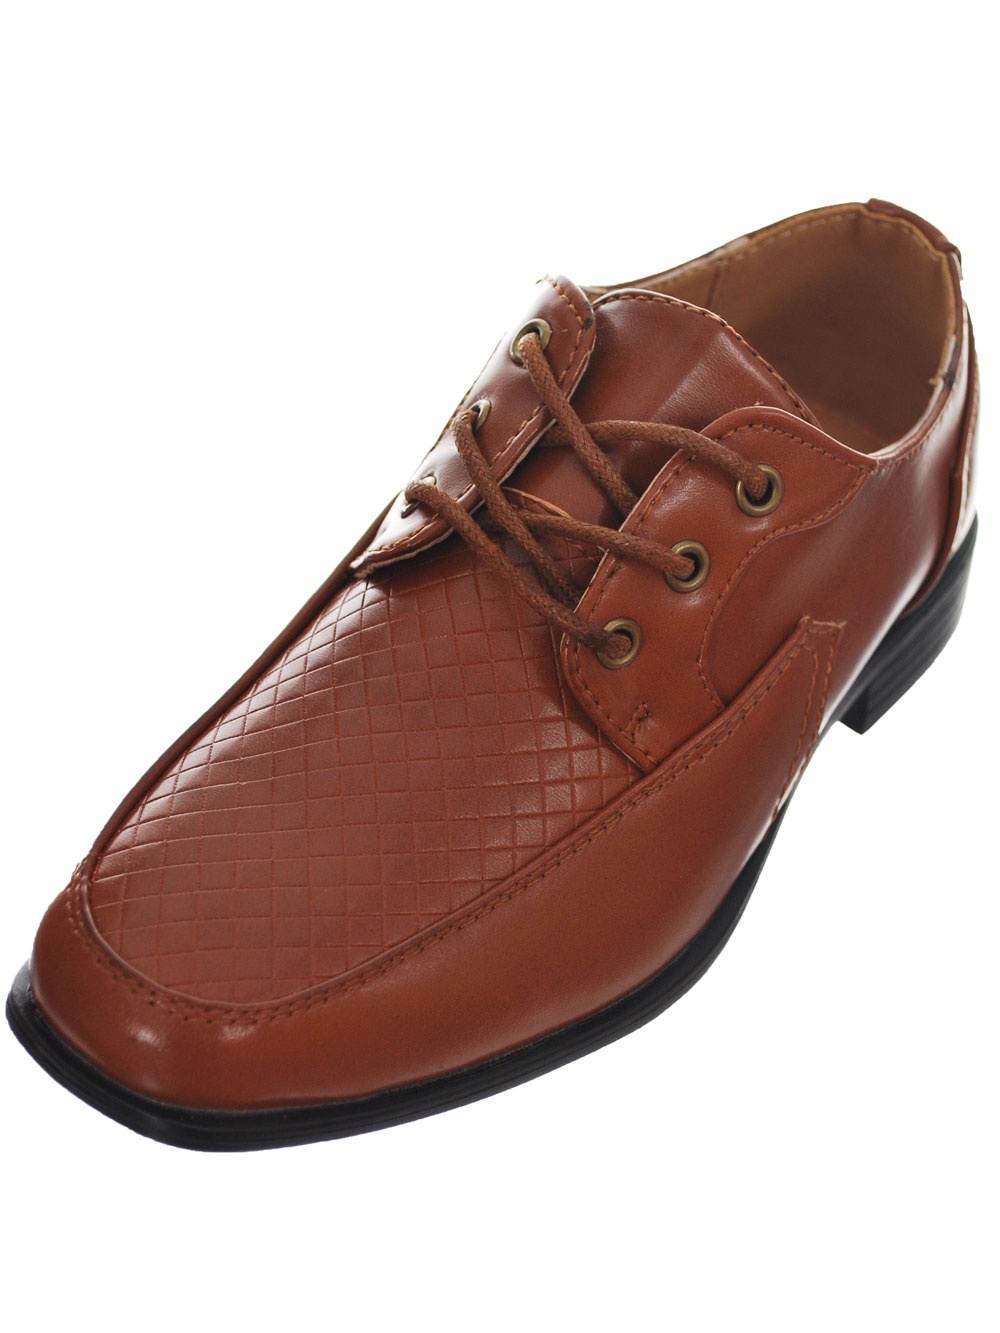 Boys' Dress Shoes (Sizes 11 - 4)